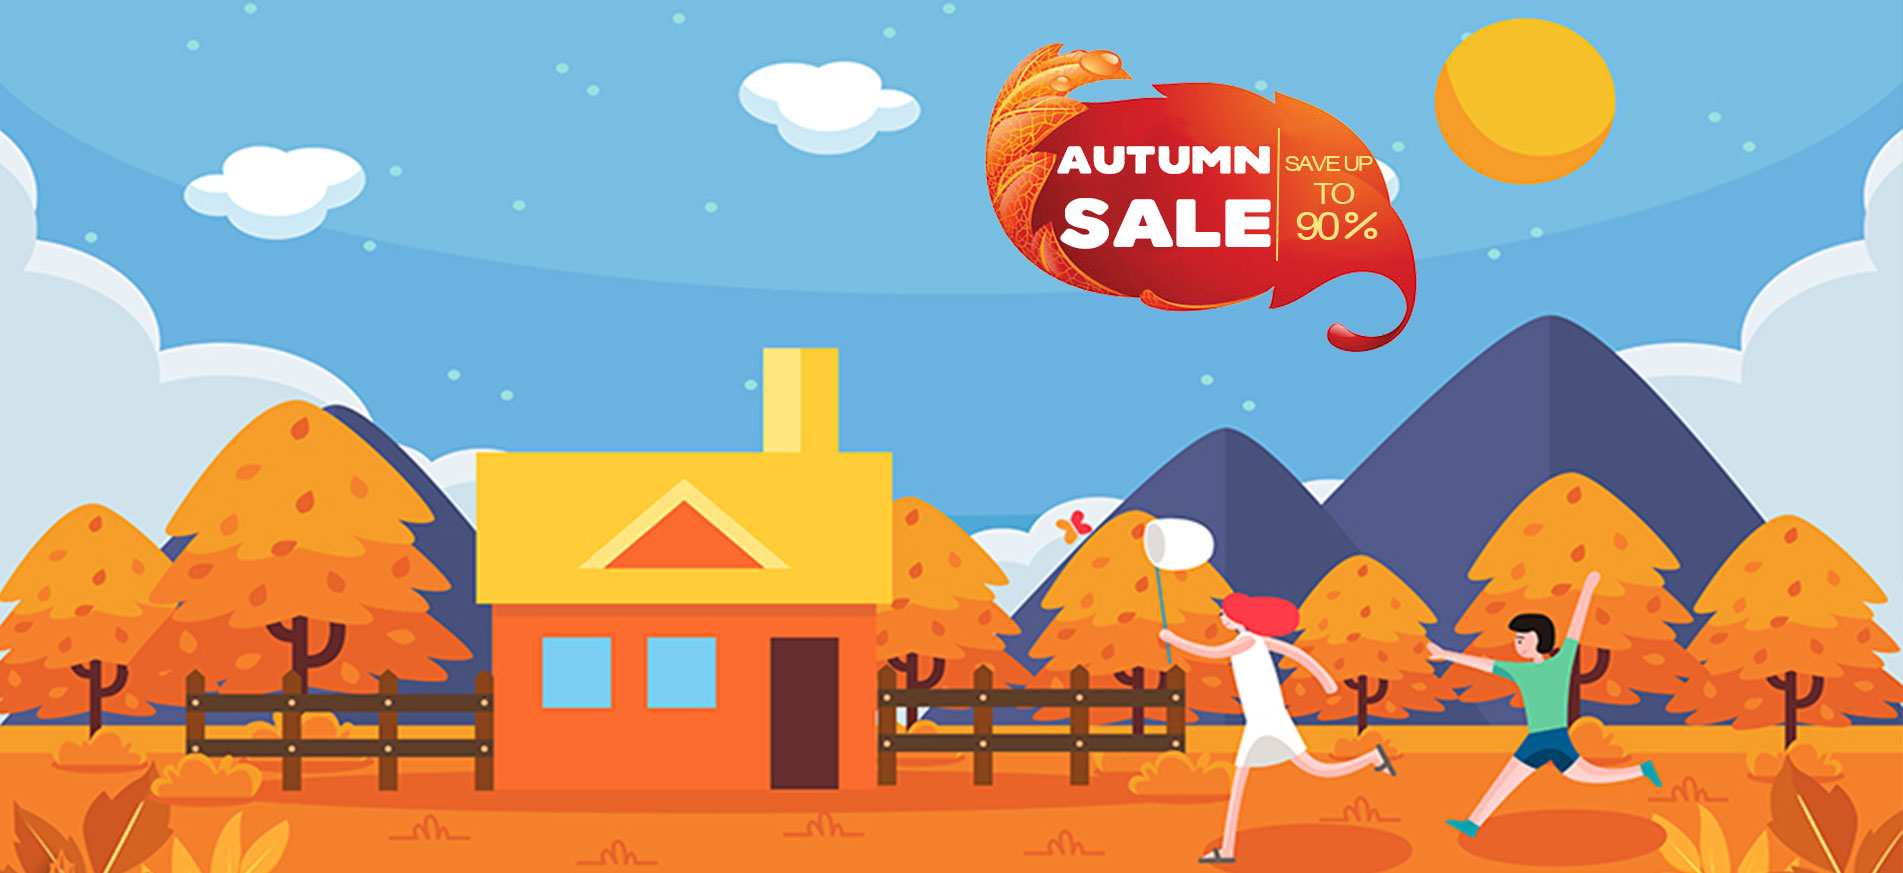 GVGMALL Autumn Sale